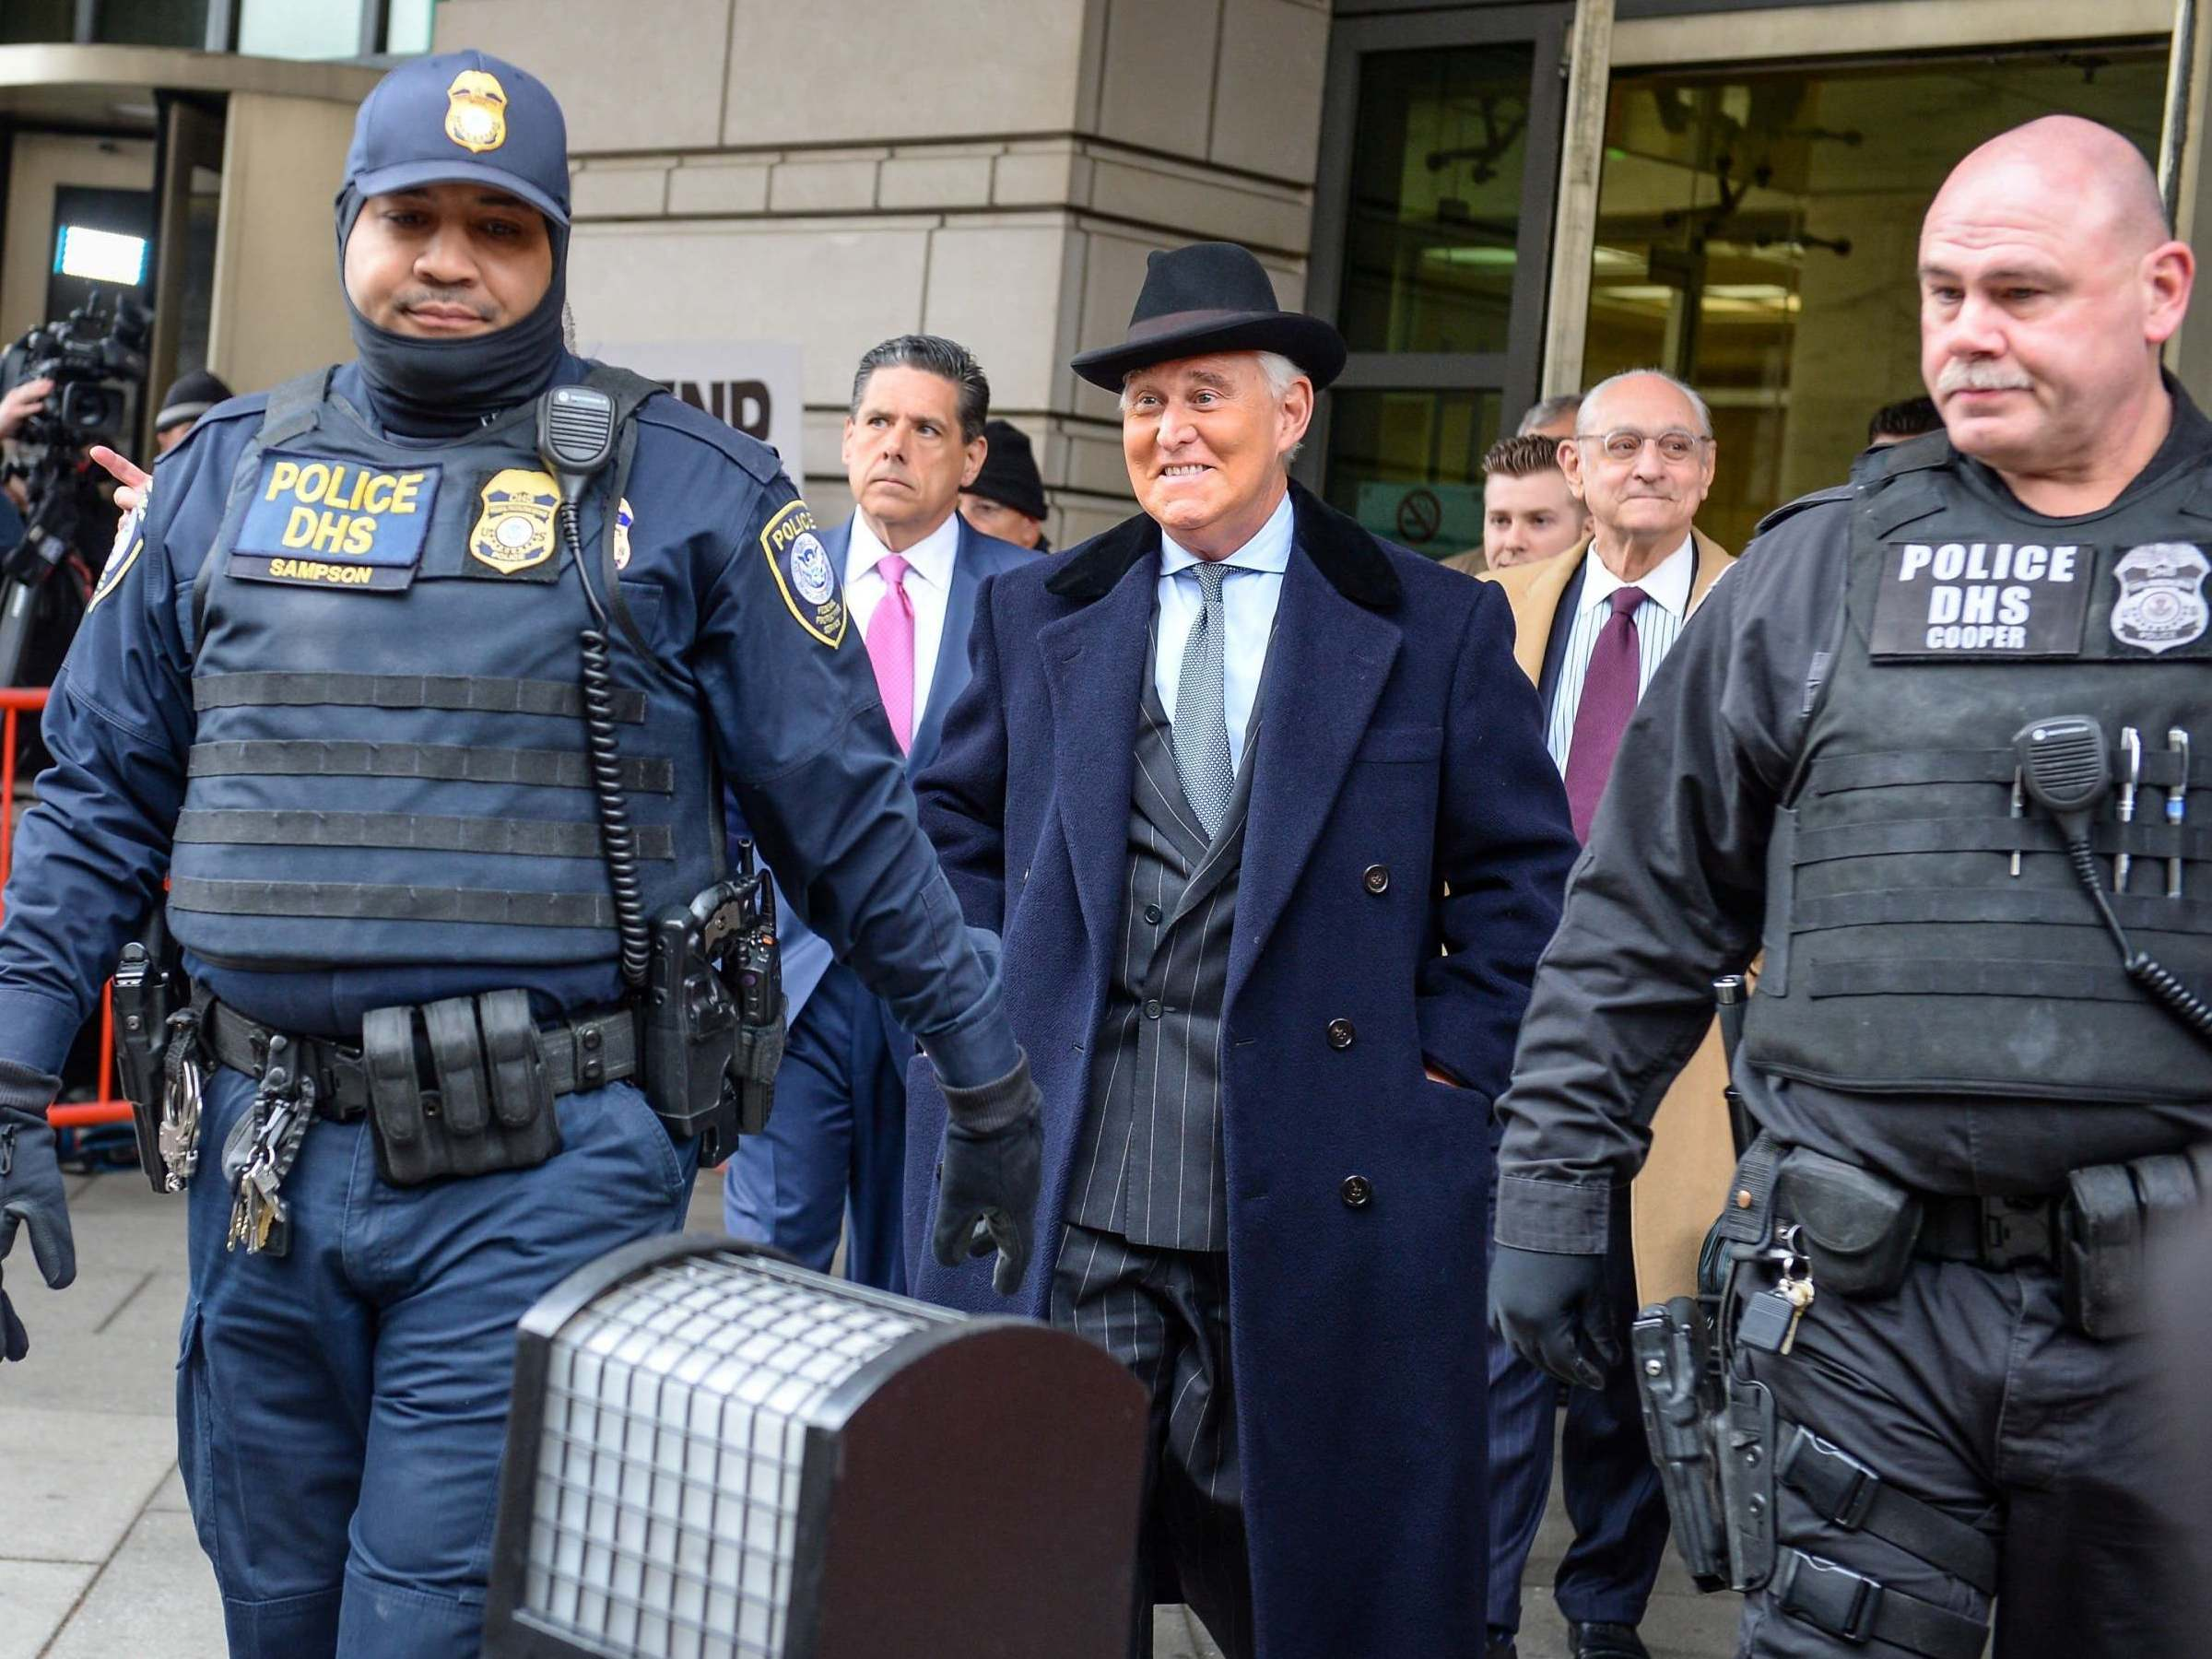 Trump friend and political adviser Roger Stone to report to federal prison on 30 June